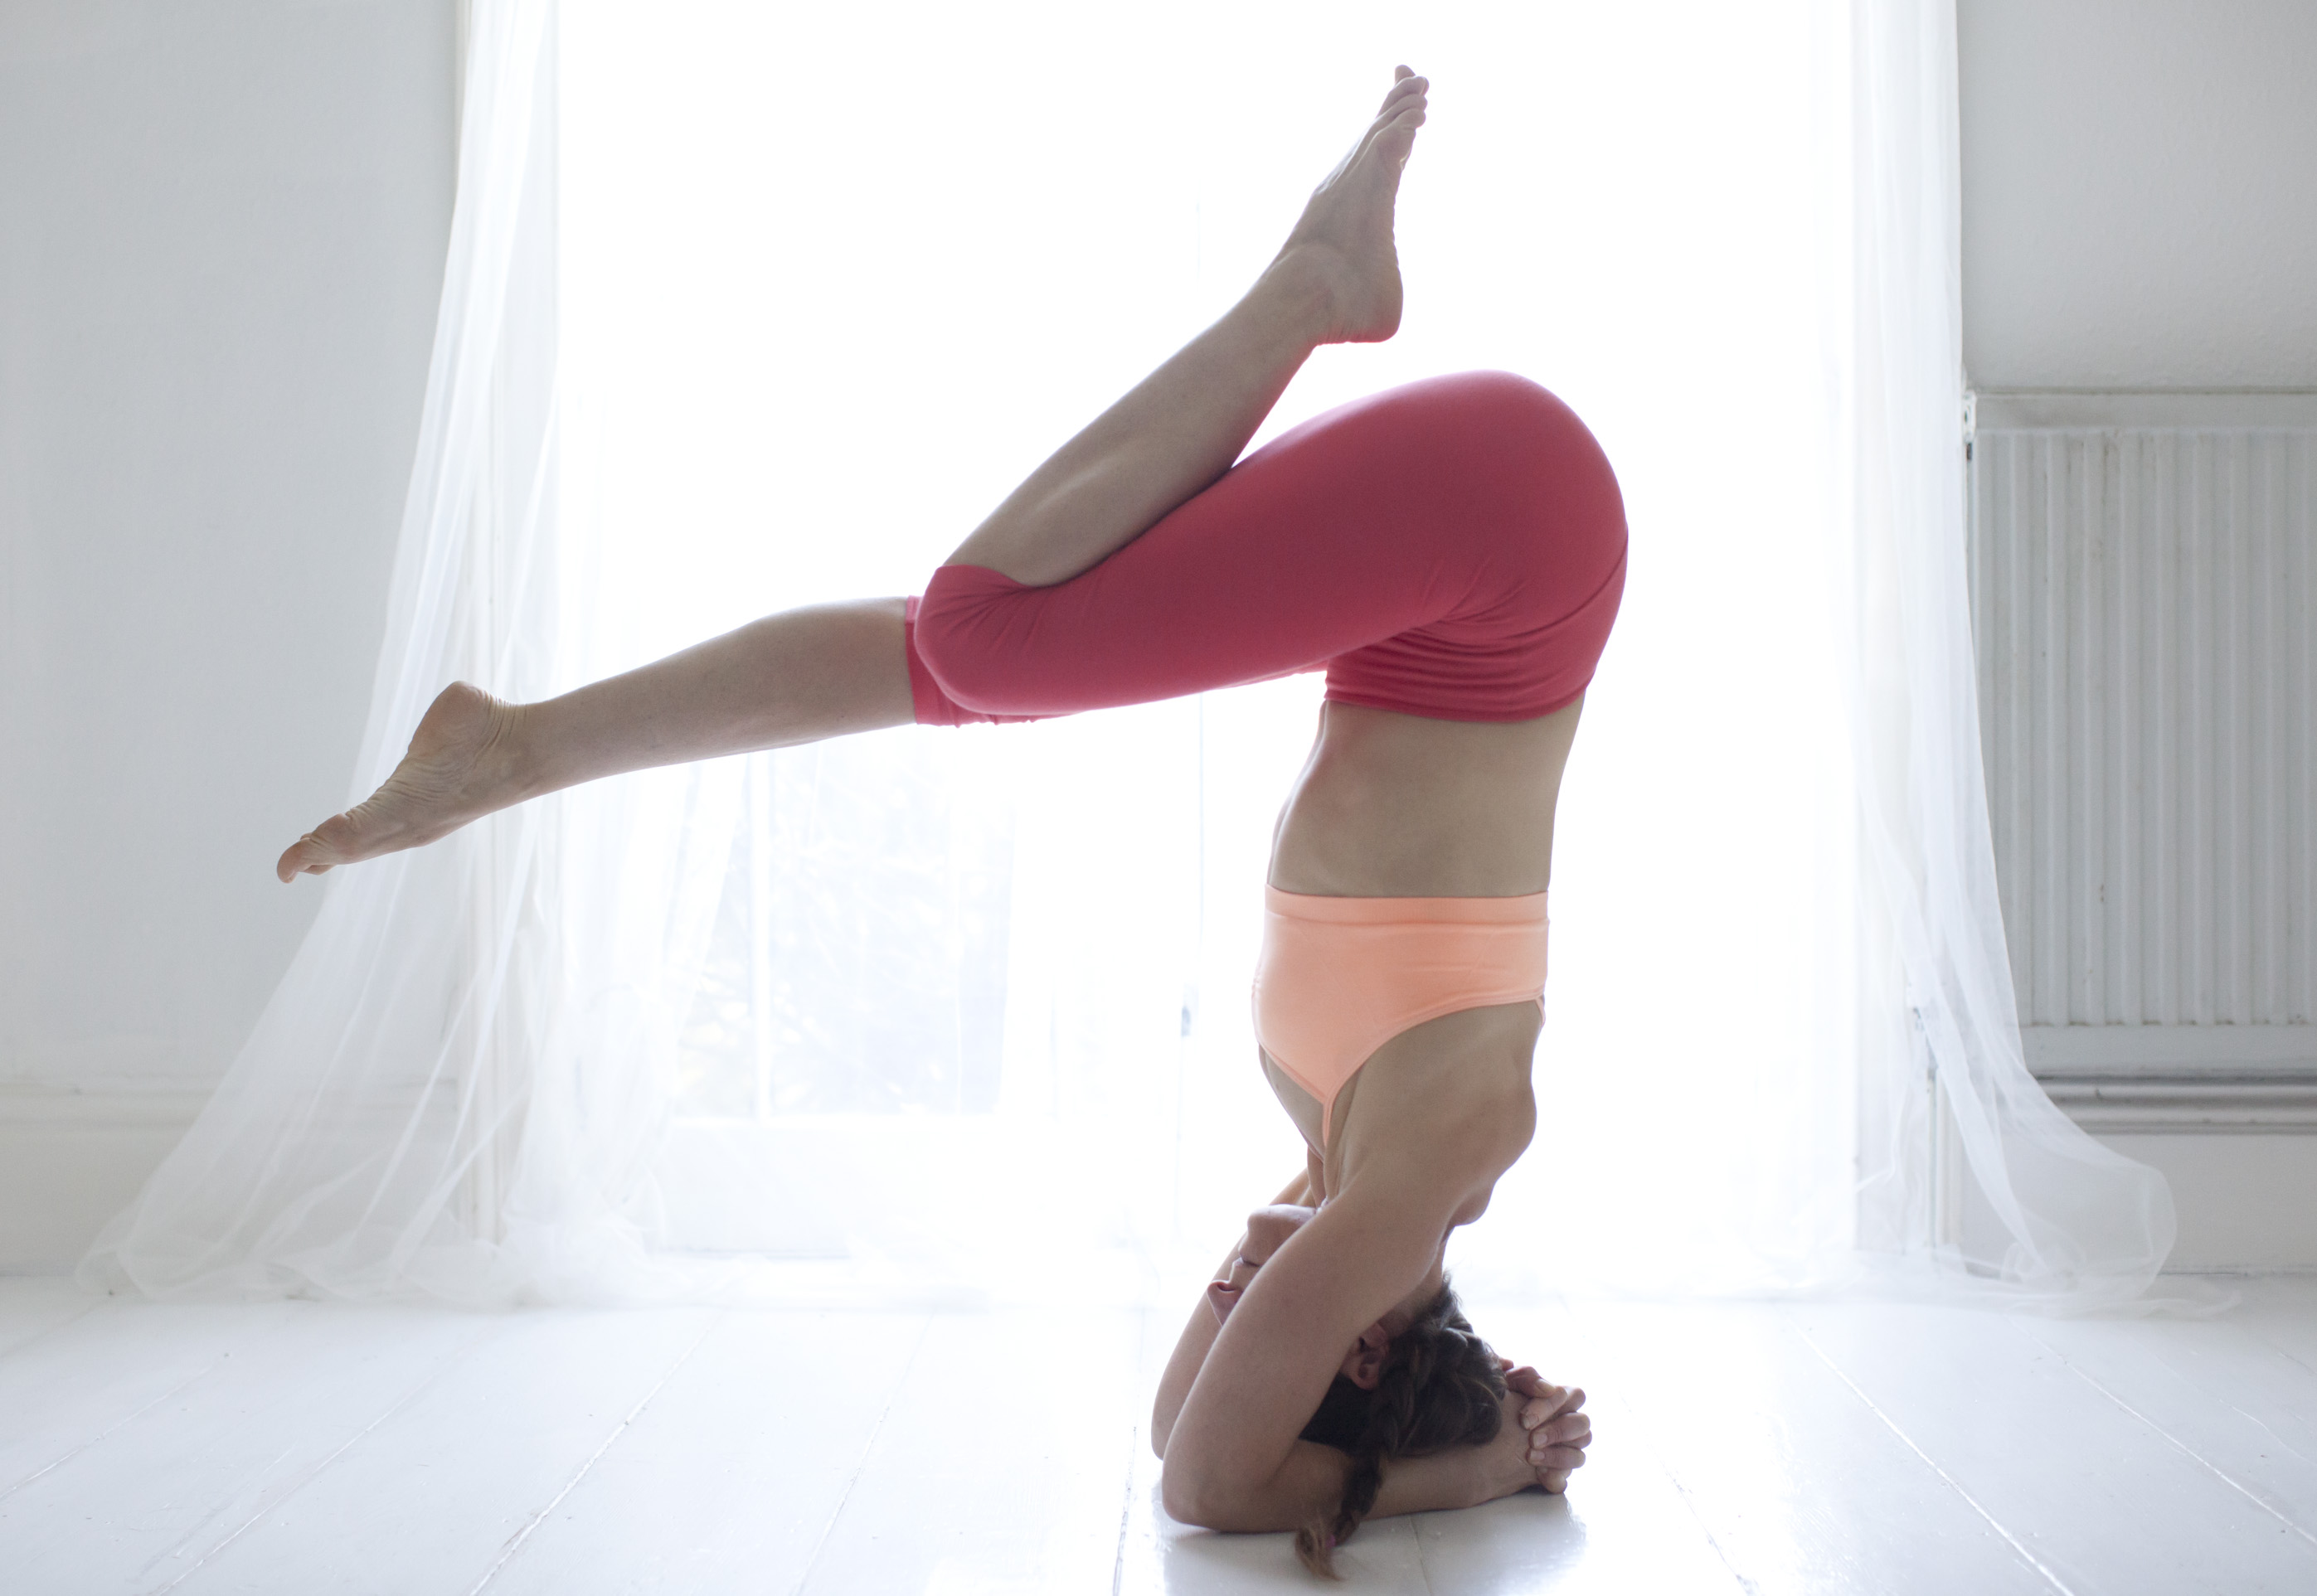 Inversions workshop with Ness Sherry - Price £25